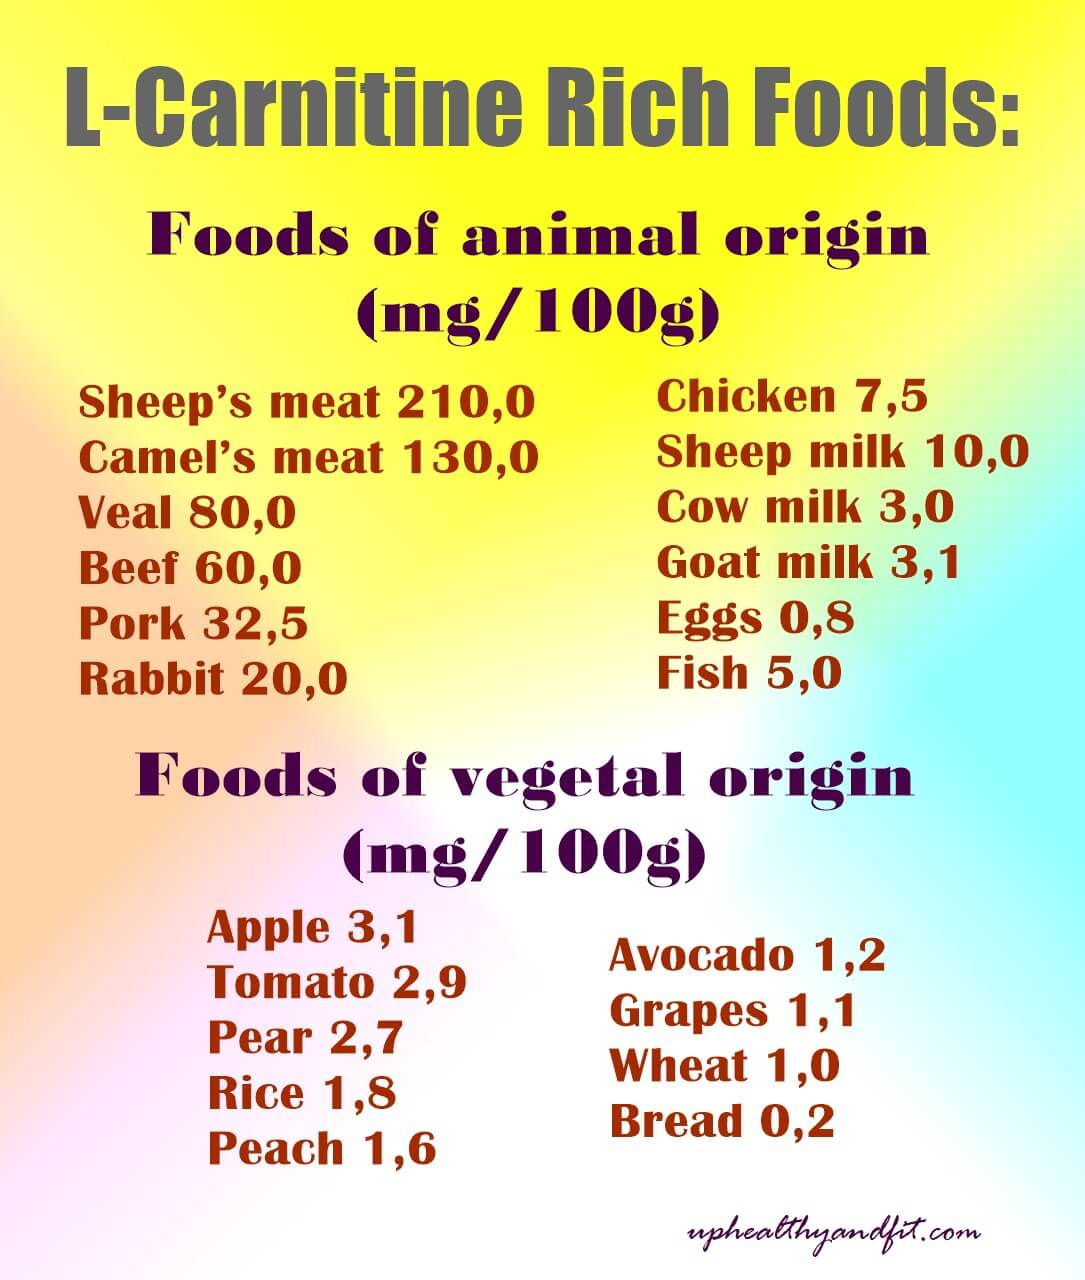 l-carnitine-rich-foods